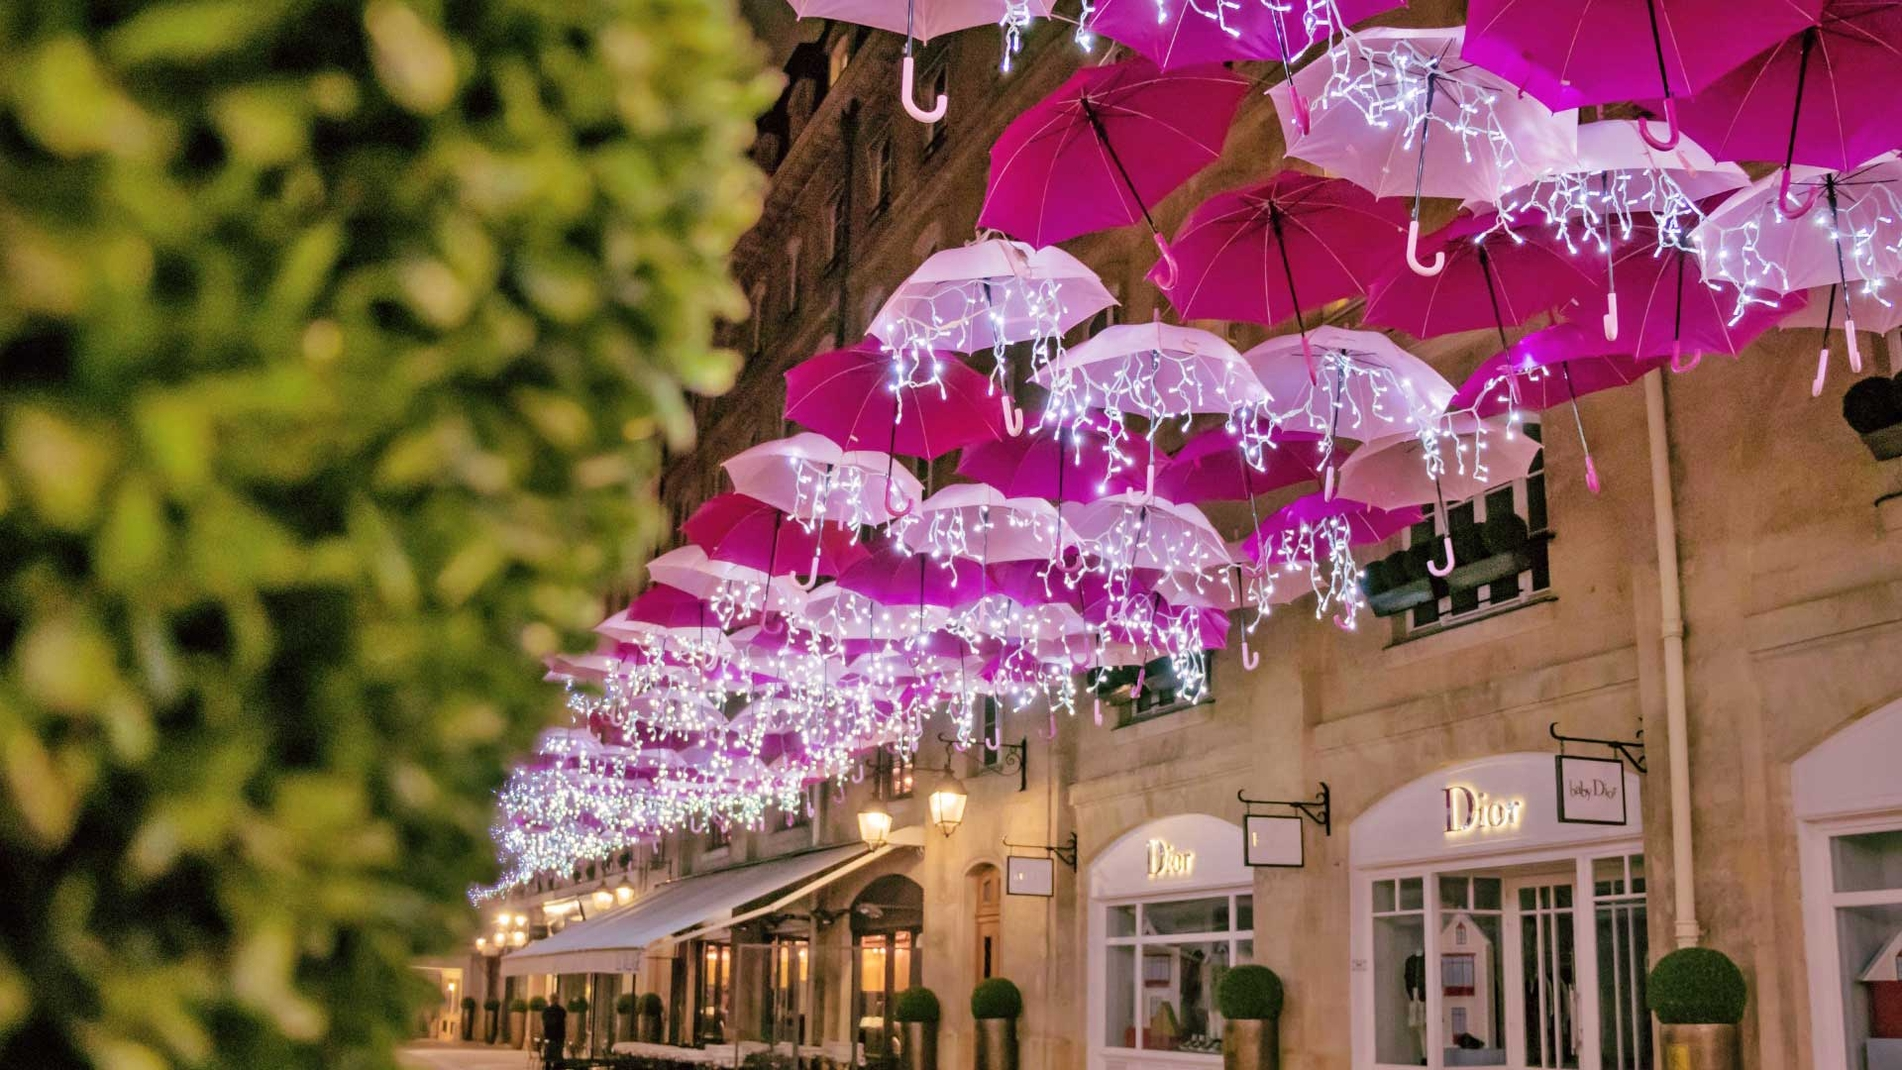 Pink Umbrella Sky Project - Paris'20